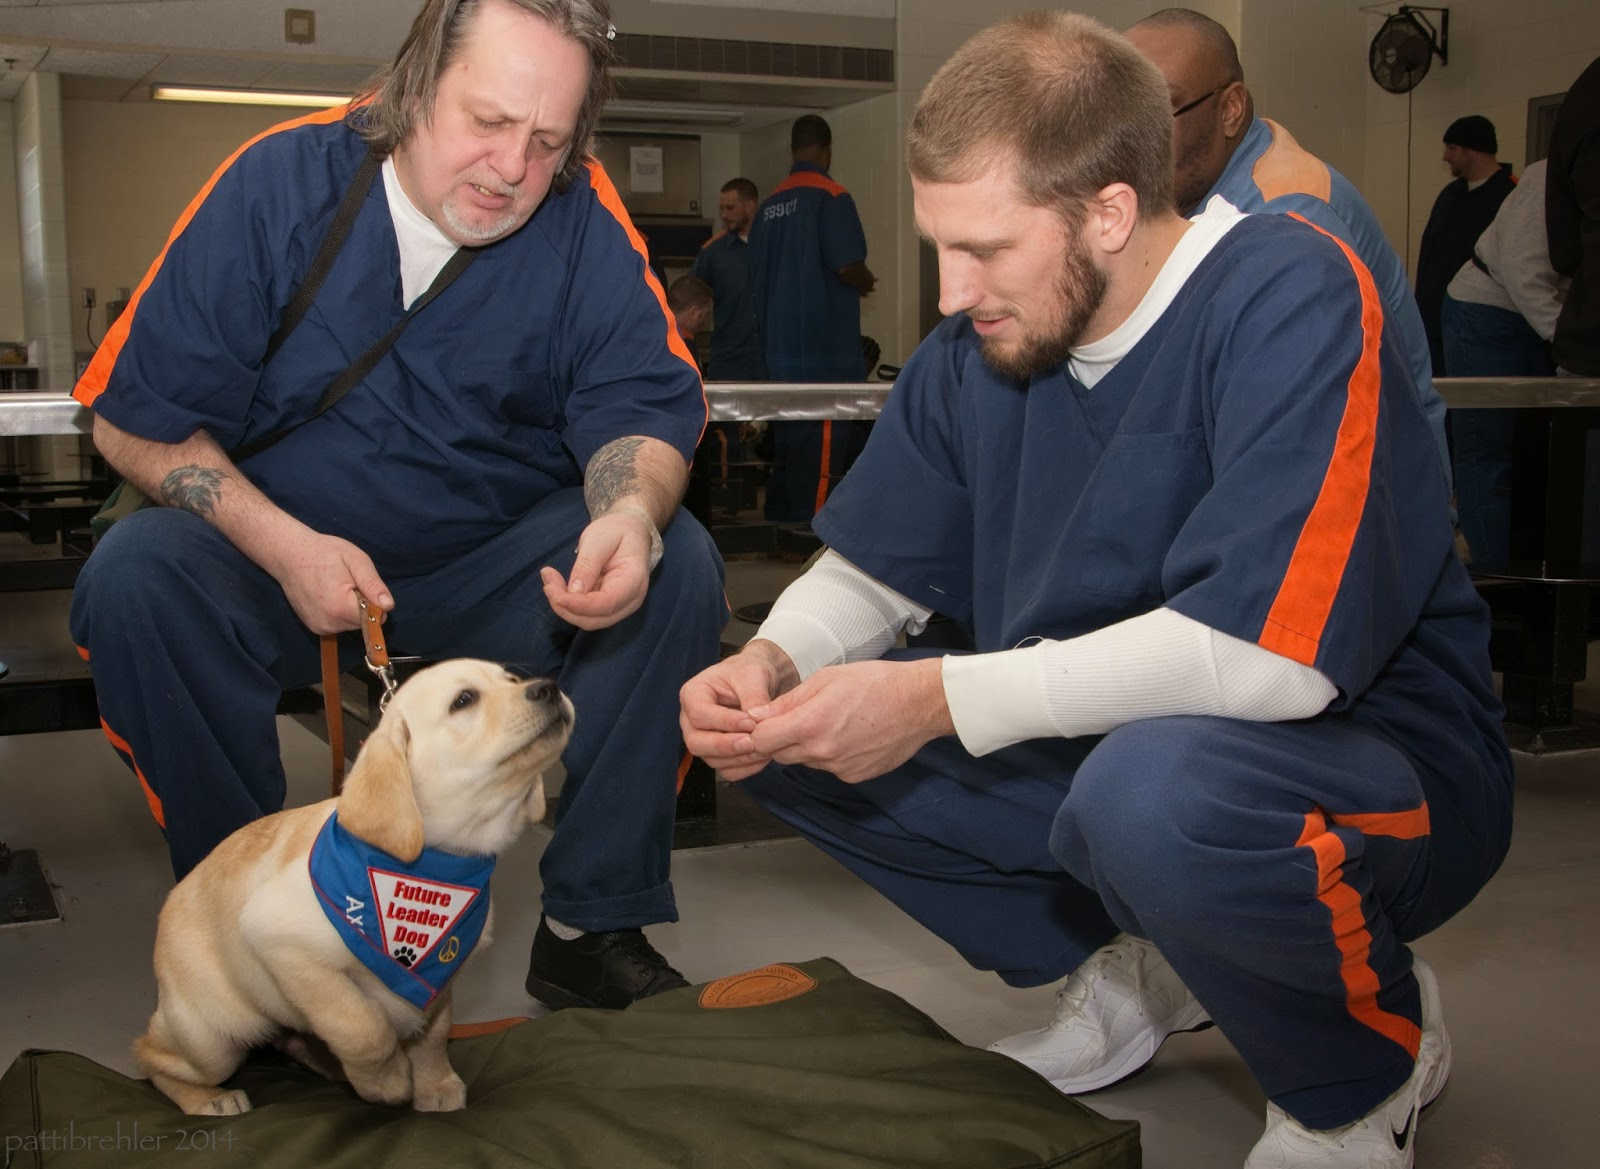 Two men, and a thrid one blocked mostly from view behind them, sit and squat with a small yellow lab puppy. The puppy is getting up from lying down on a green dog bed. He is wearing a blue bandana with a white triangle patch with the words Future Leater Dog and a black paw print. Hi is sniffing the air toward the men's hands. The men are wearing the blue prison uniforms with orange stripes on the arms and legs. The man on the left is holding the leash with his right hand. His elbows are on his knees (he is sitting on metal seat attached to a lunch talbe) and his left hand is near the puppy's head. He is holding a bit of kibble in his left hand. The man on the right is squatting with his elbows on his thighs. His hands are togehter in front of the puppy's face and he also has kibble in them.